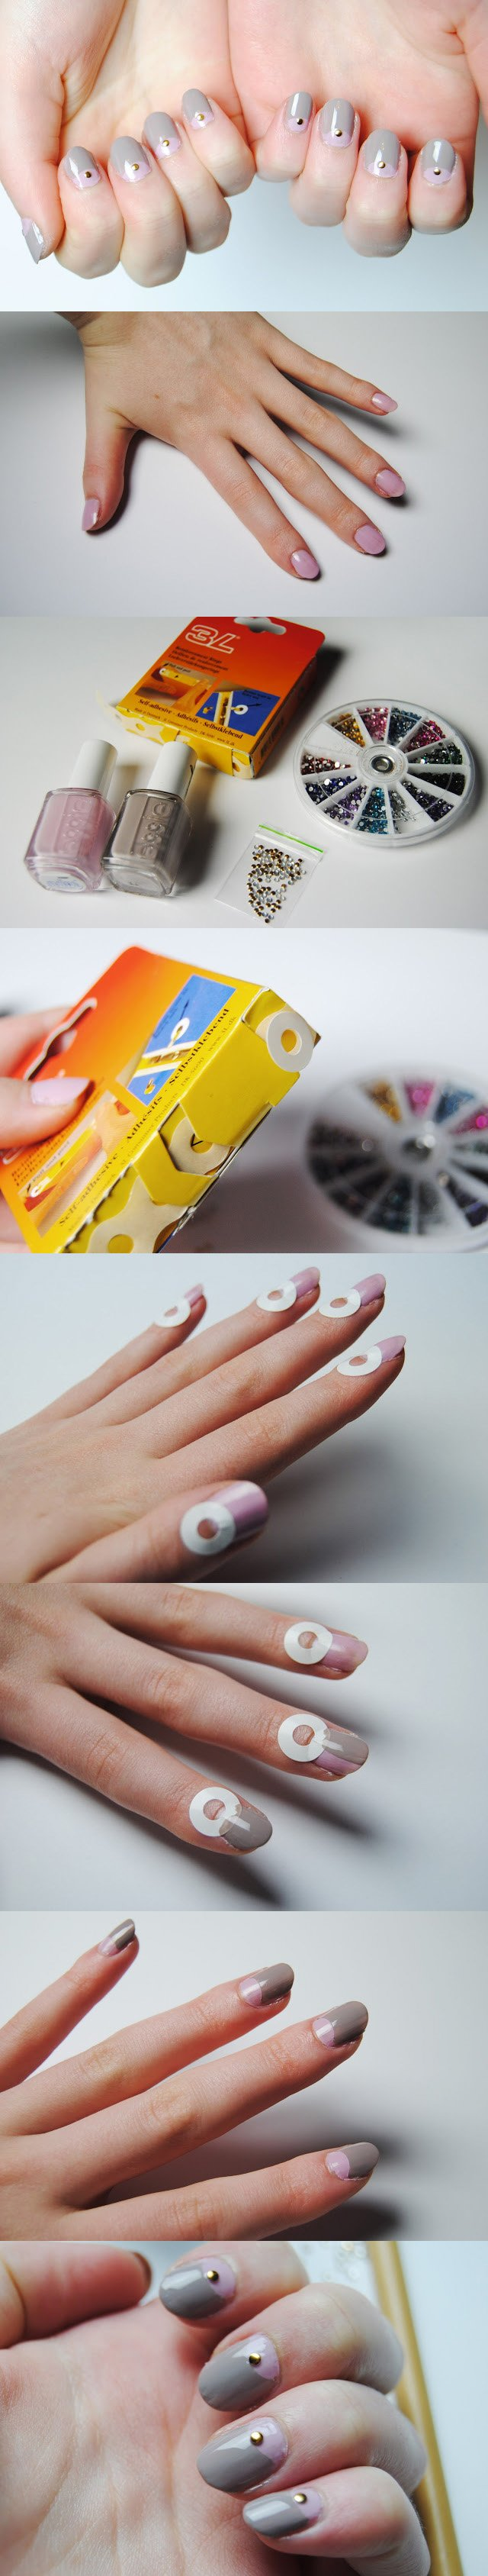 DIY Half Moon Nails with Studs